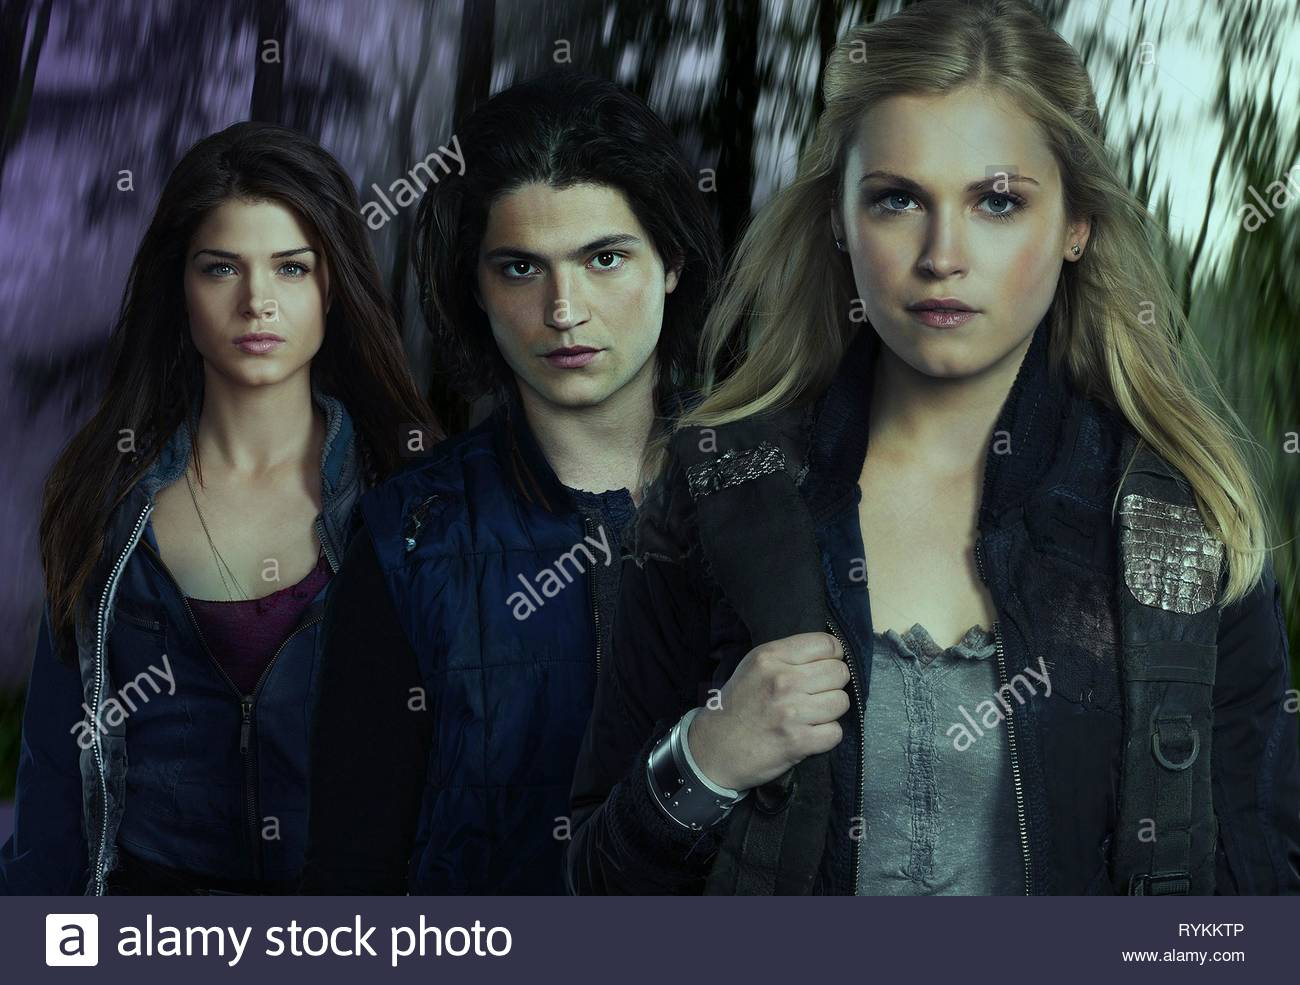 AVGEROPOULOS,MORLEY,TAYLOR, THE HUNDRED, 2014 - Stock Image